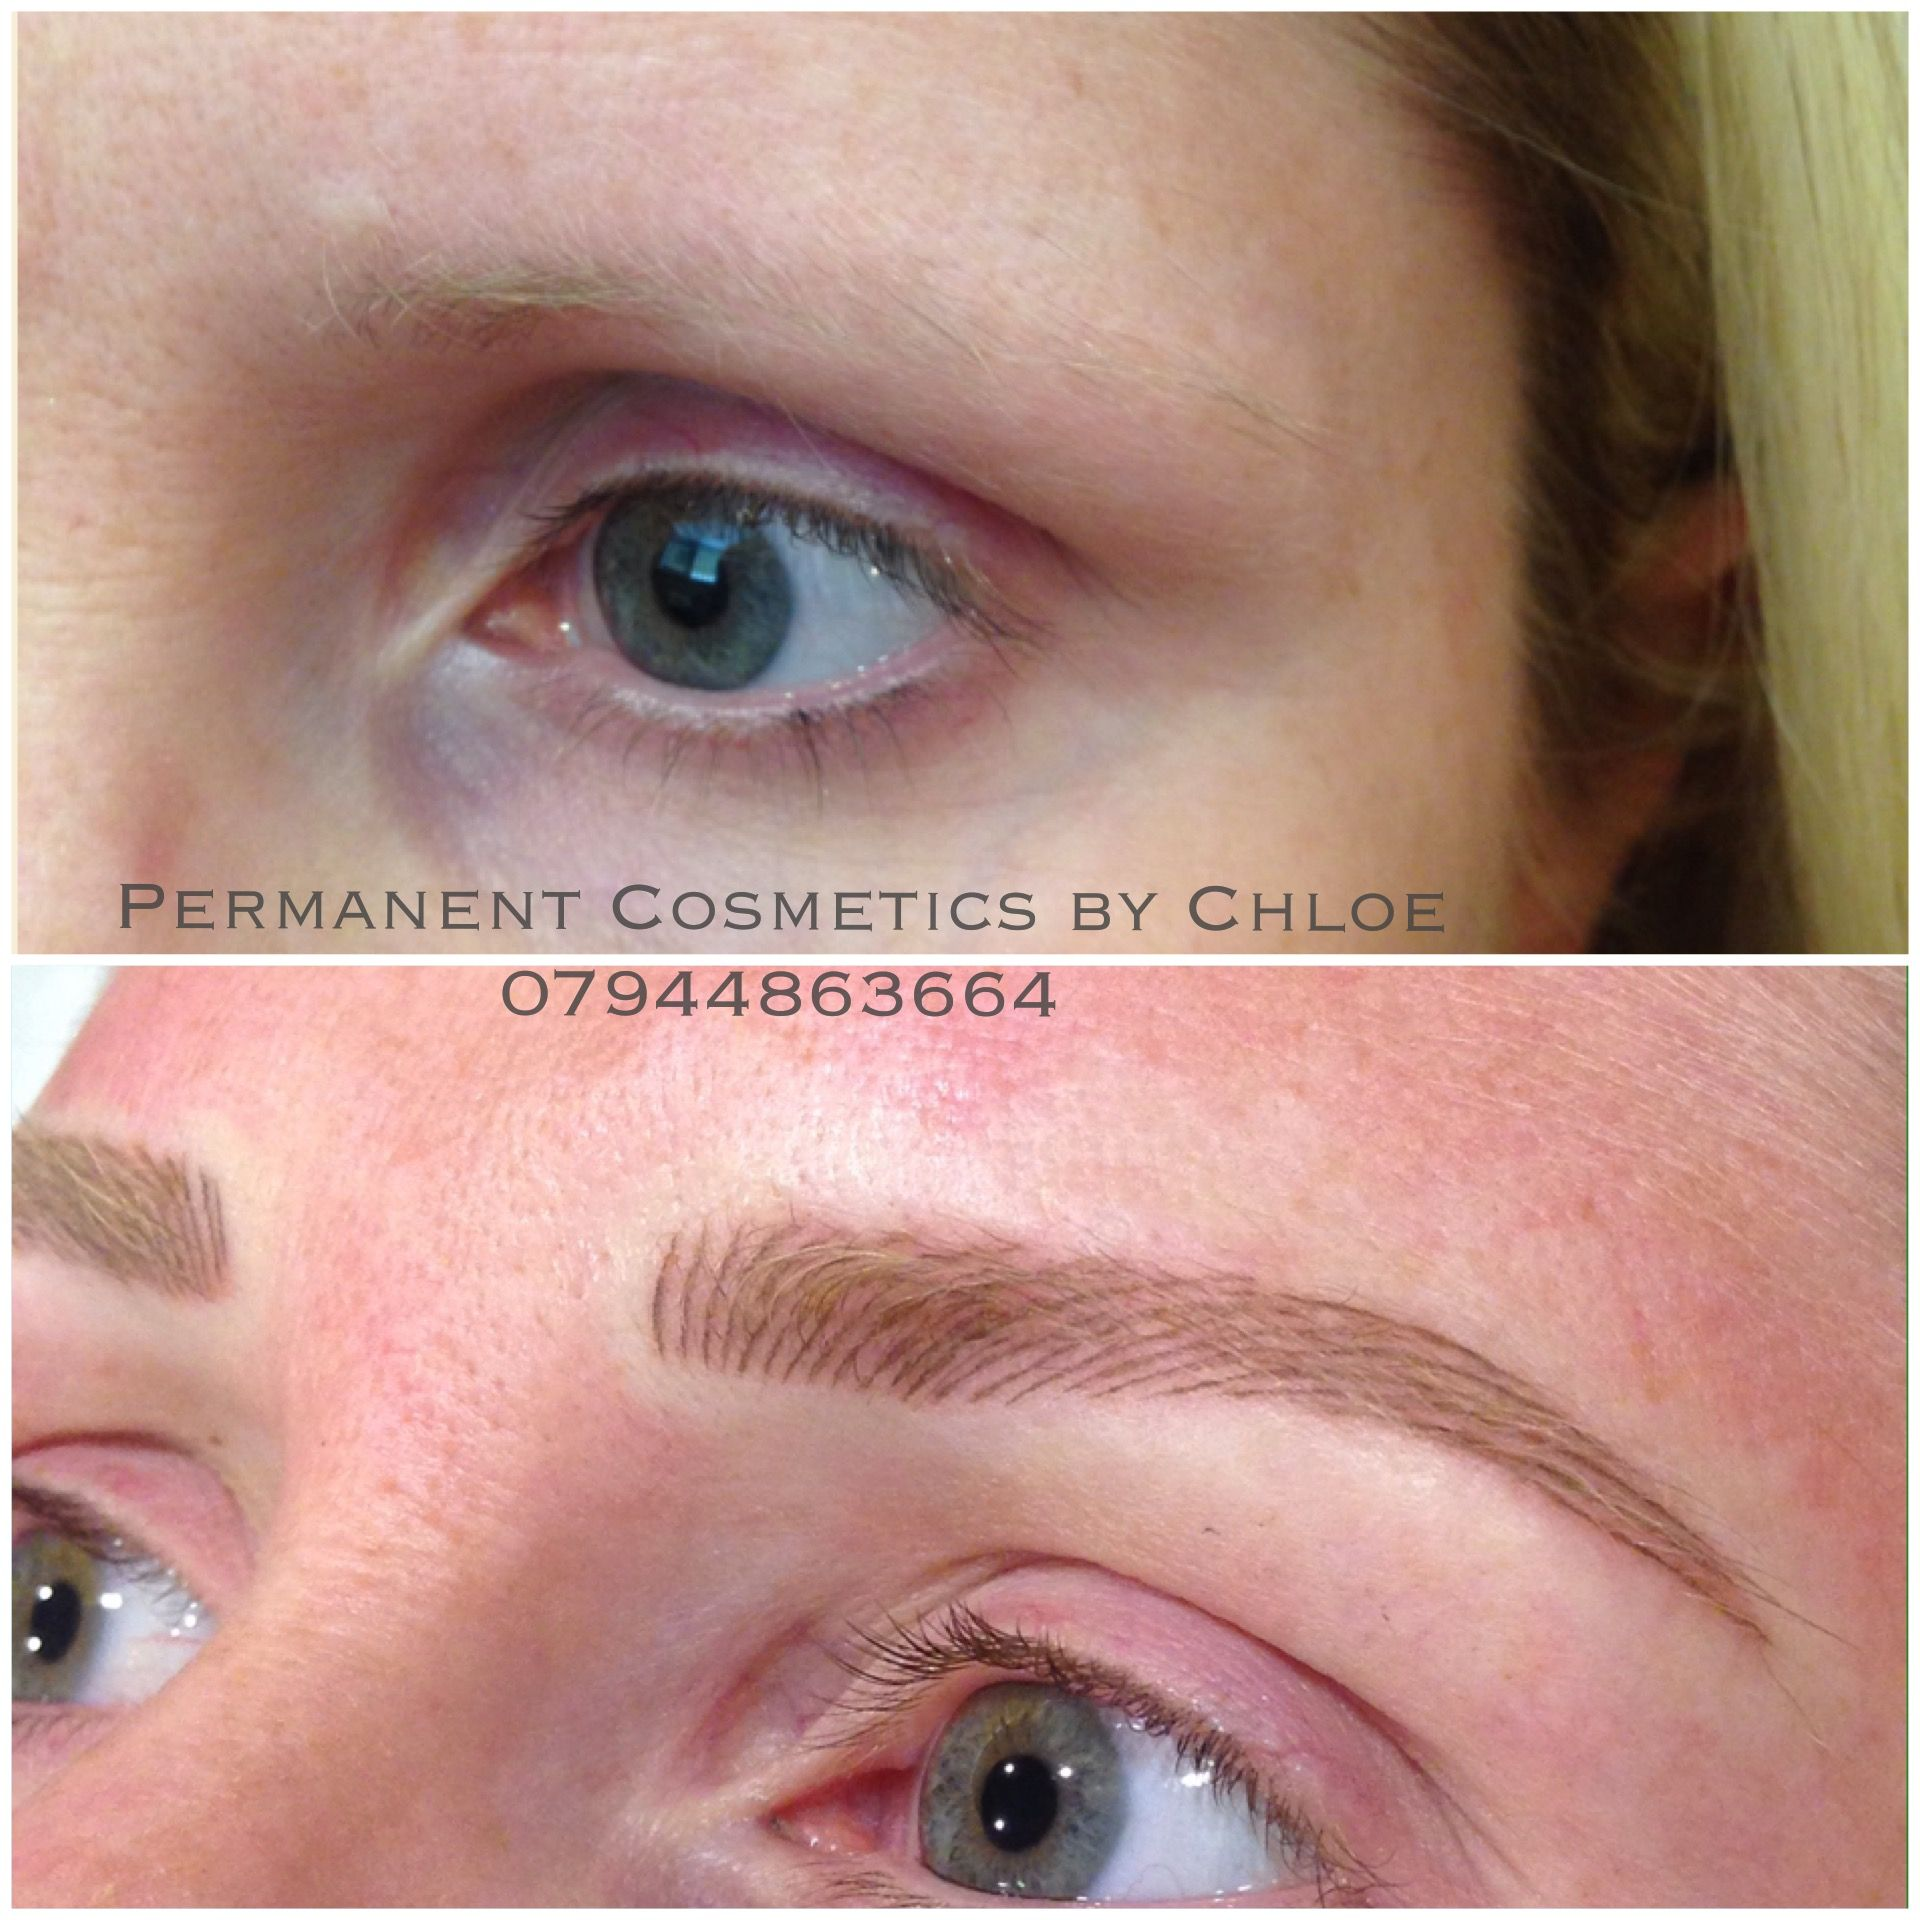 Permanent Cosmetics Brows By Chloe Across Manchester Cheshire Uk